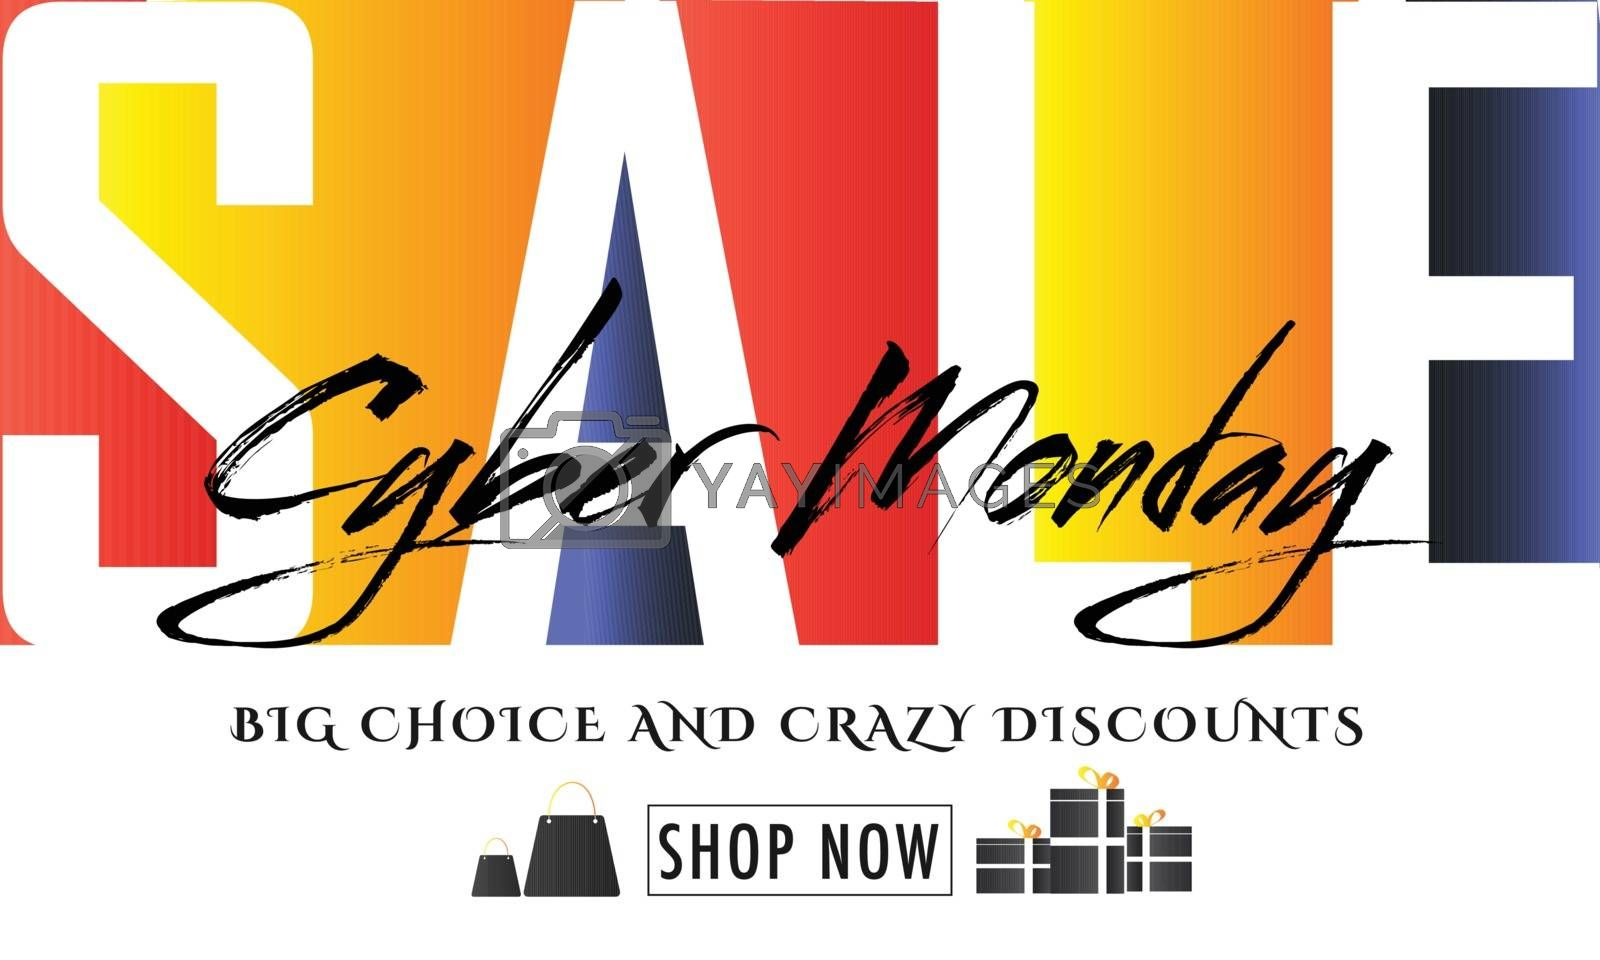 Sale poster or banner design with crazy discount offers on Cyber Monday Sale.